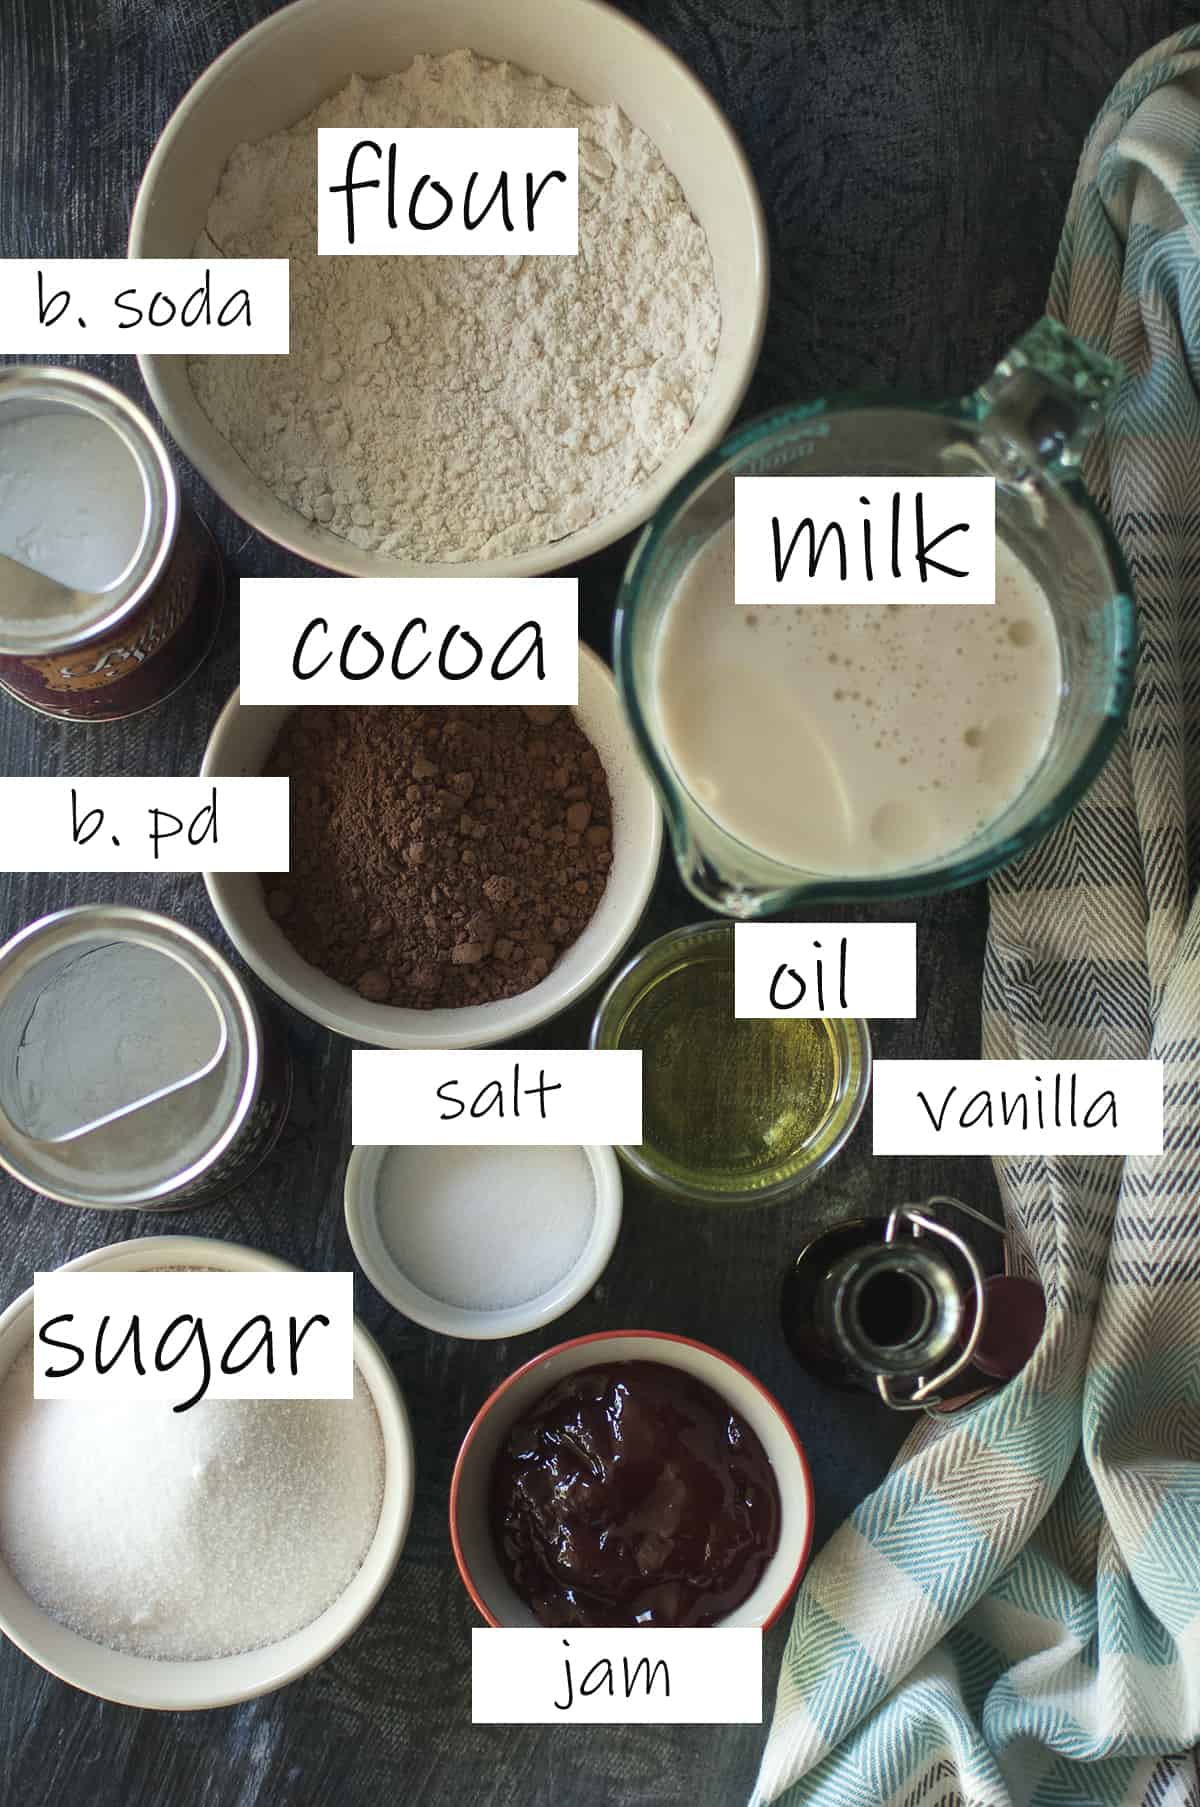 Ingredients needed to make the cake recipe placed in bowls